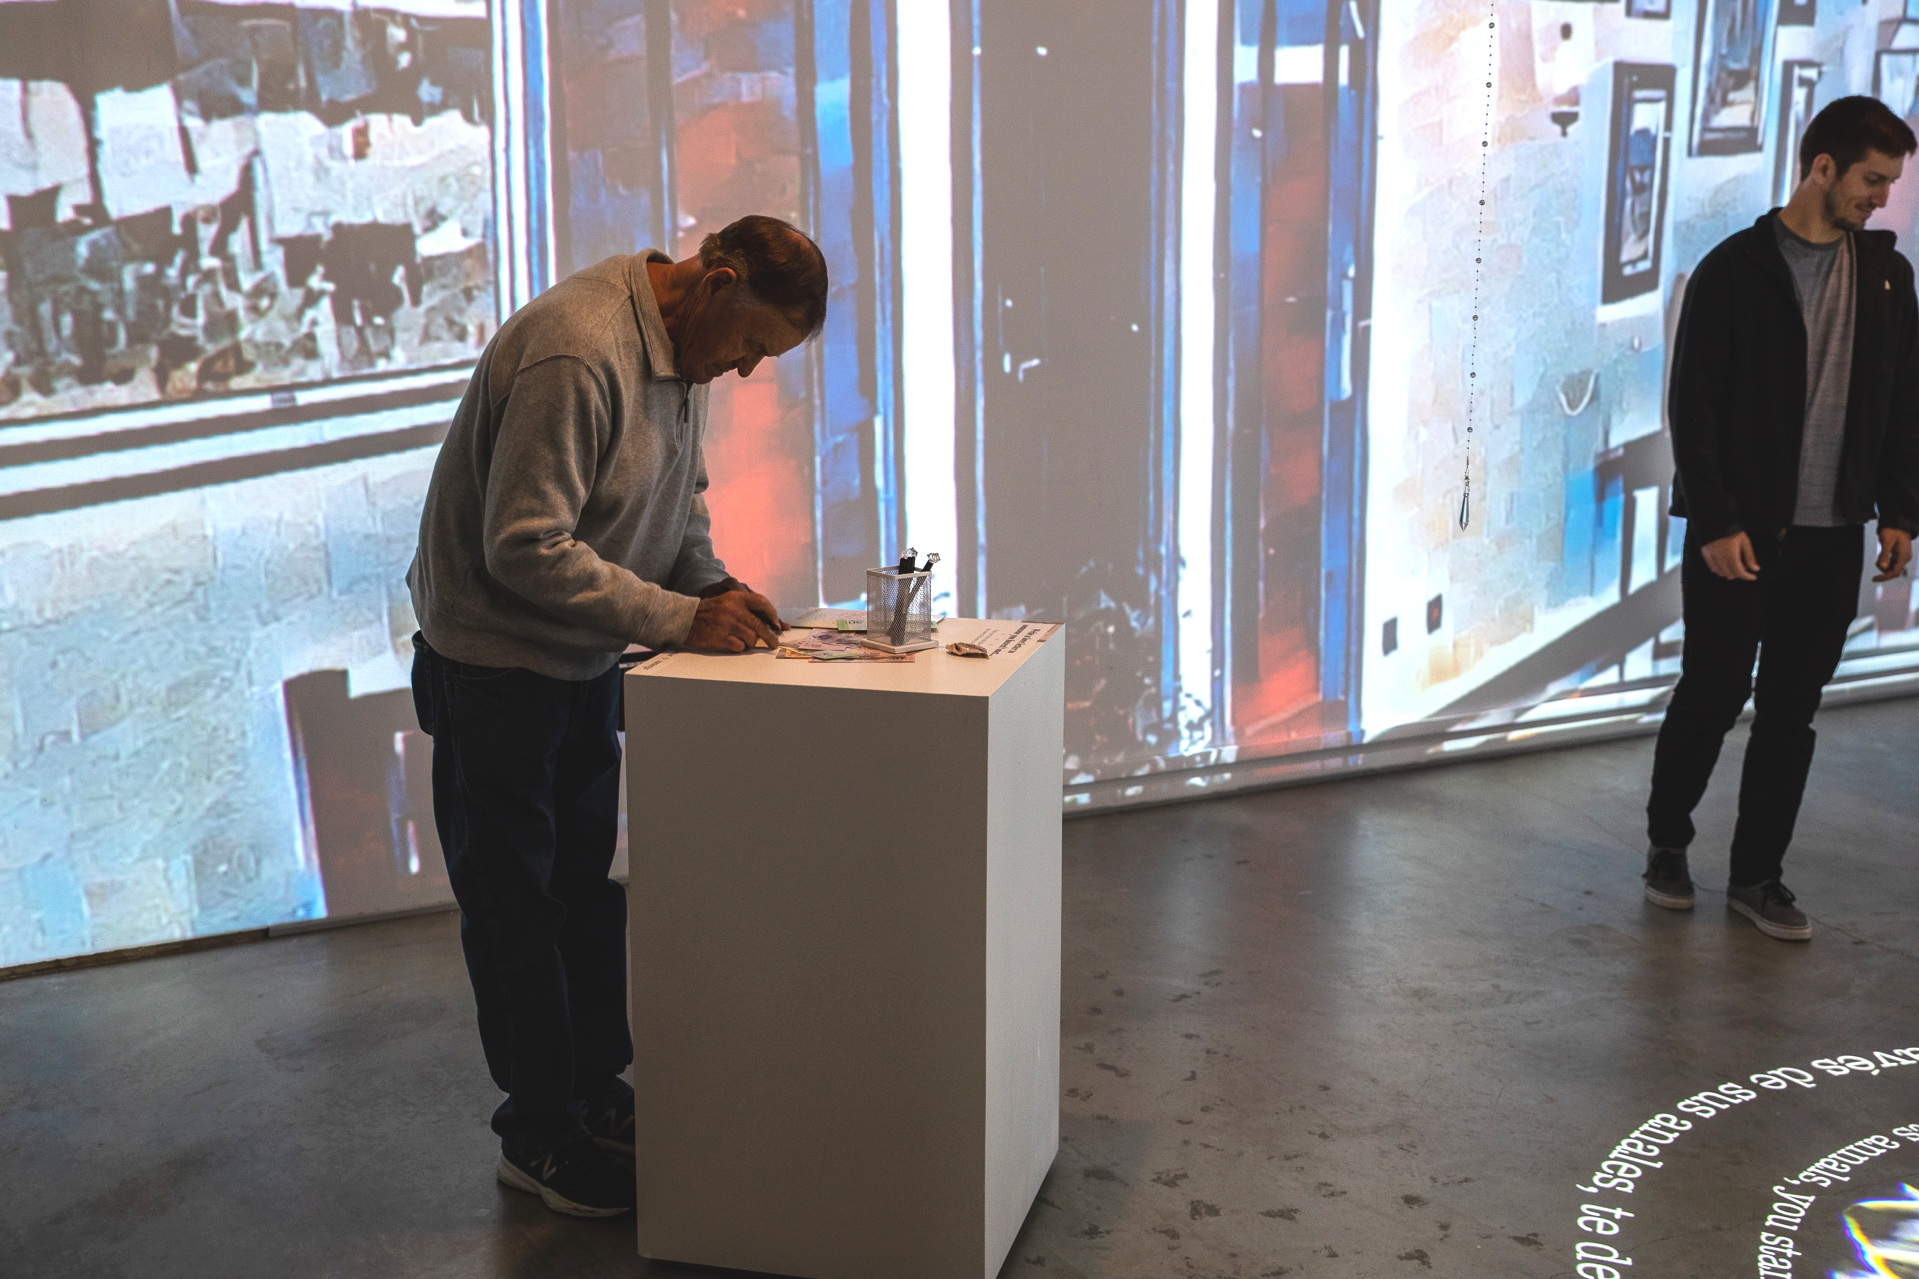 A gallery visitor participating in the ritual of writing a love letter